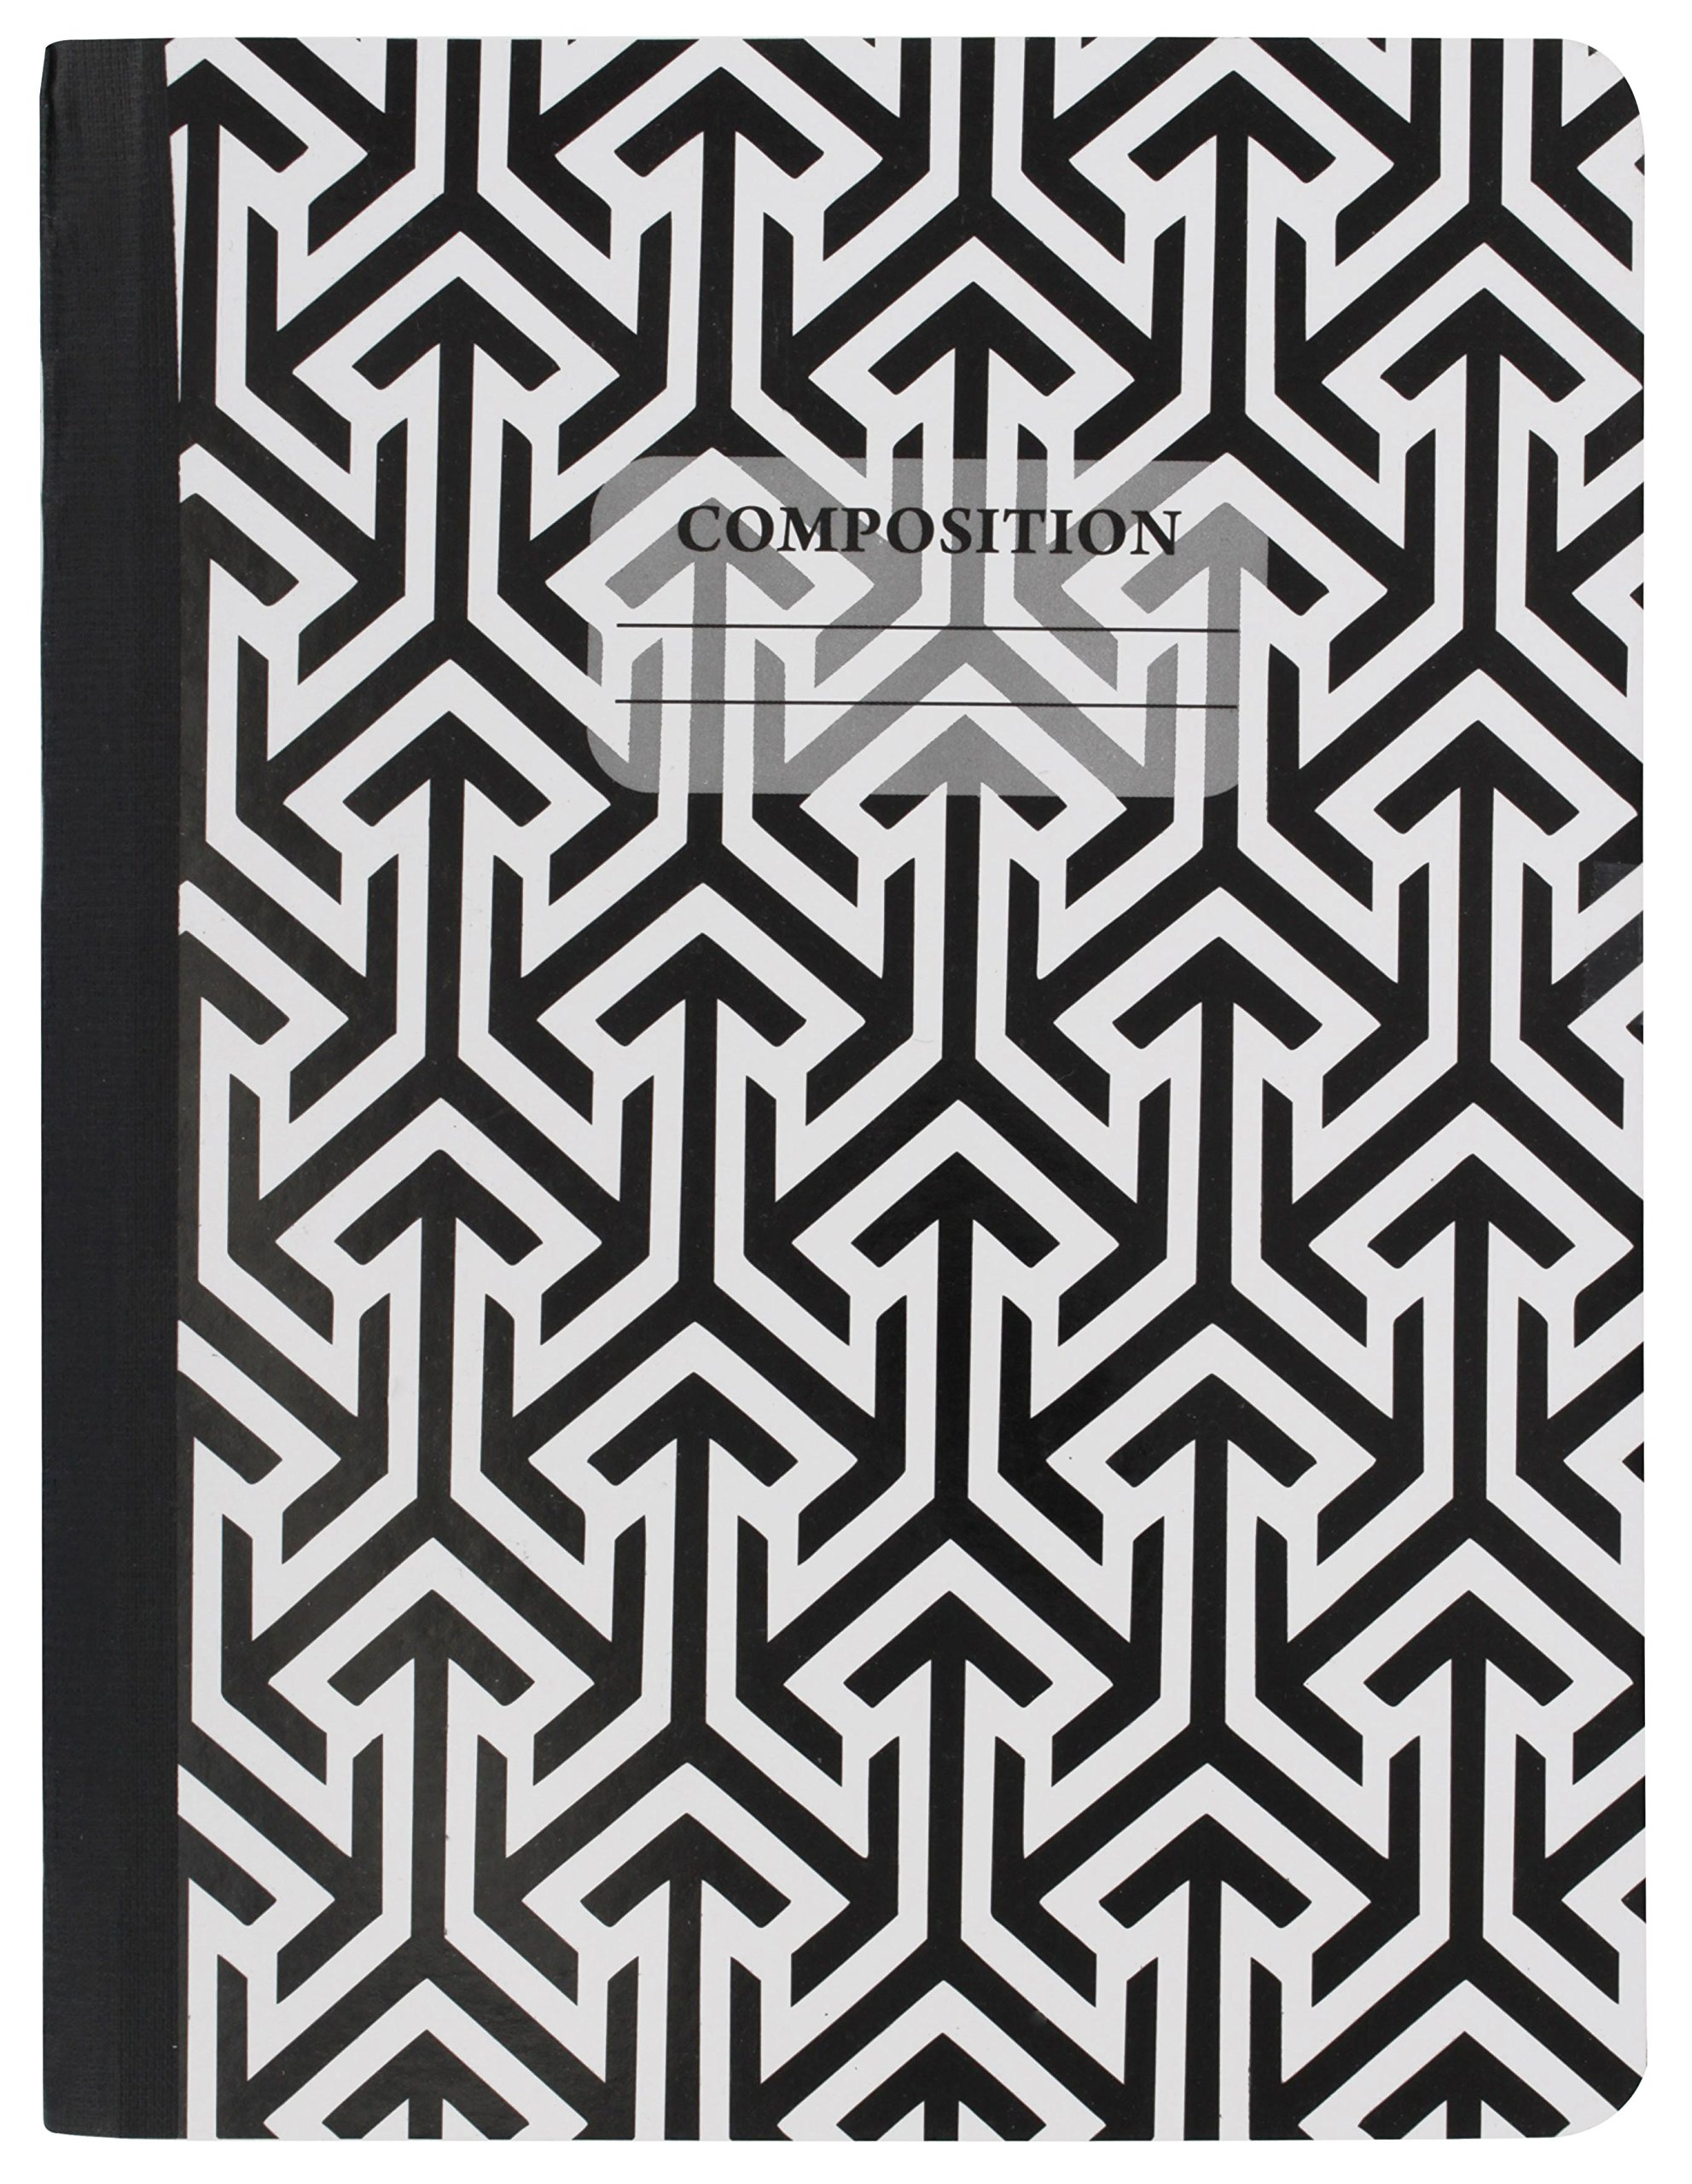 Emraw Black & White 4 Fashion Styles Cover Composition Book with 100 Sheets of Wide Ruled White Paper - Set Includes All Style Covers (4 Pack) by Emraw (Image #3)